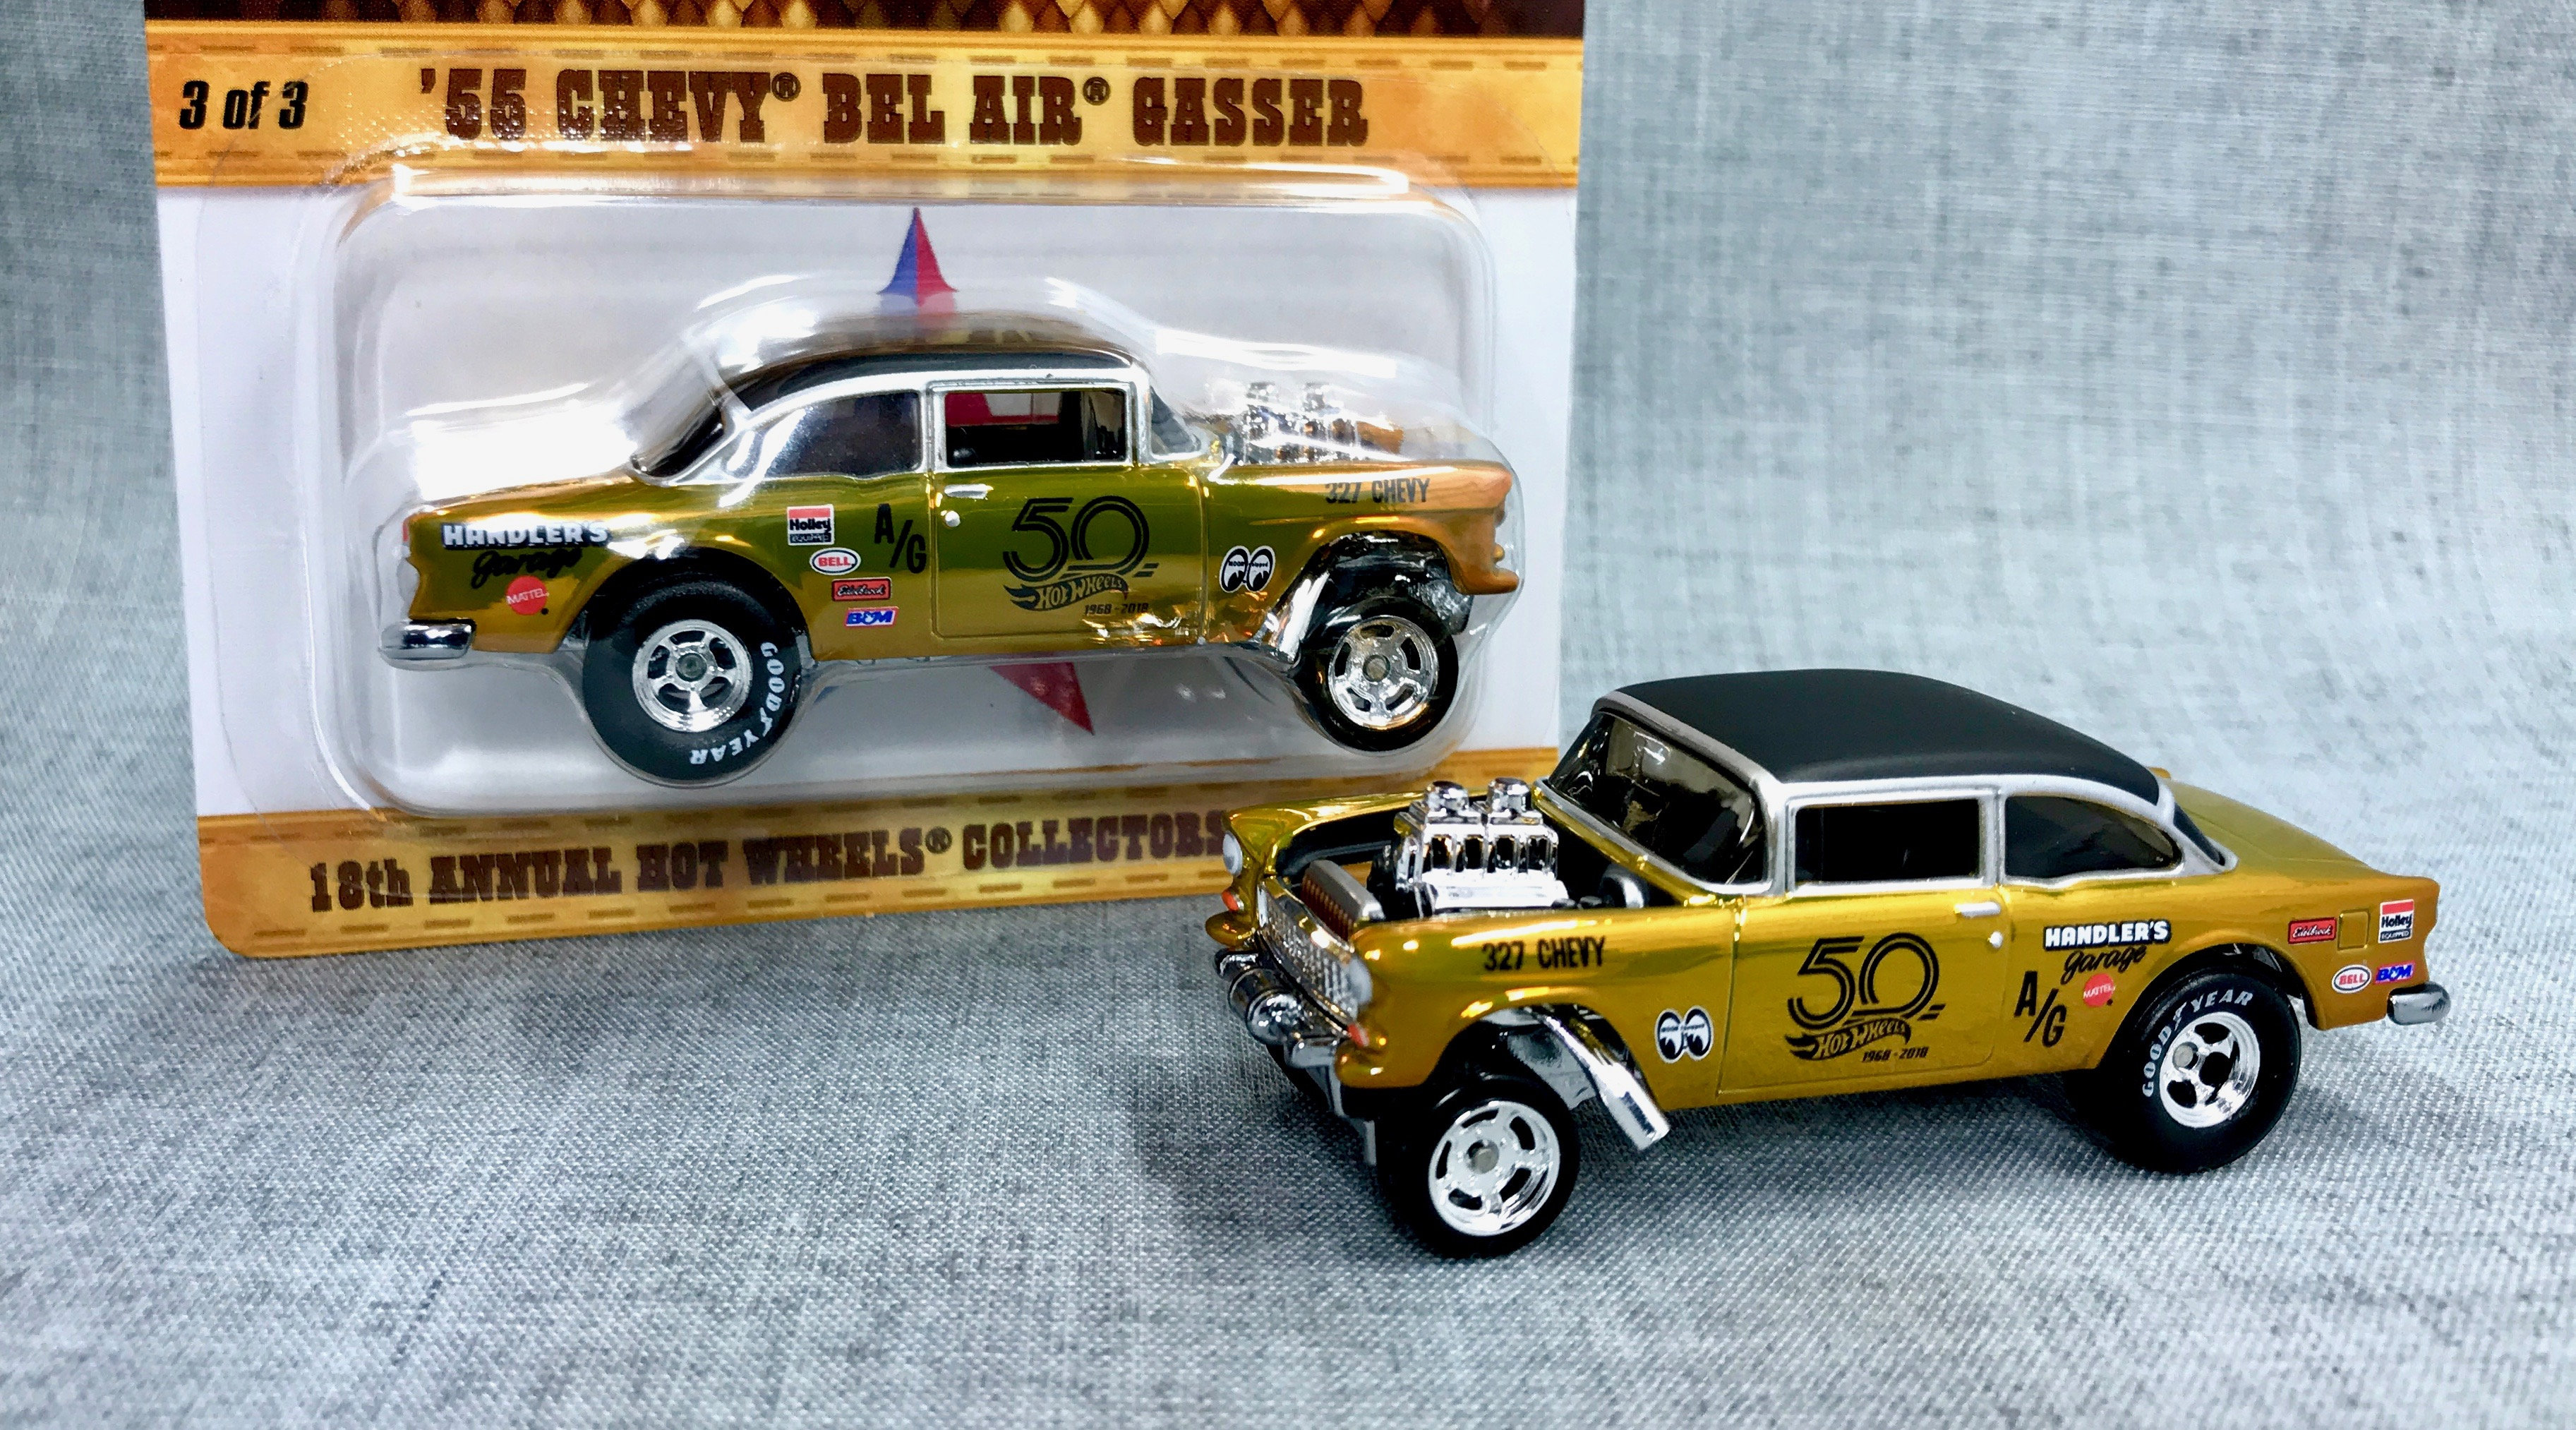 Hot Wheels just unveiled the gold '55 Bel Air Gasser